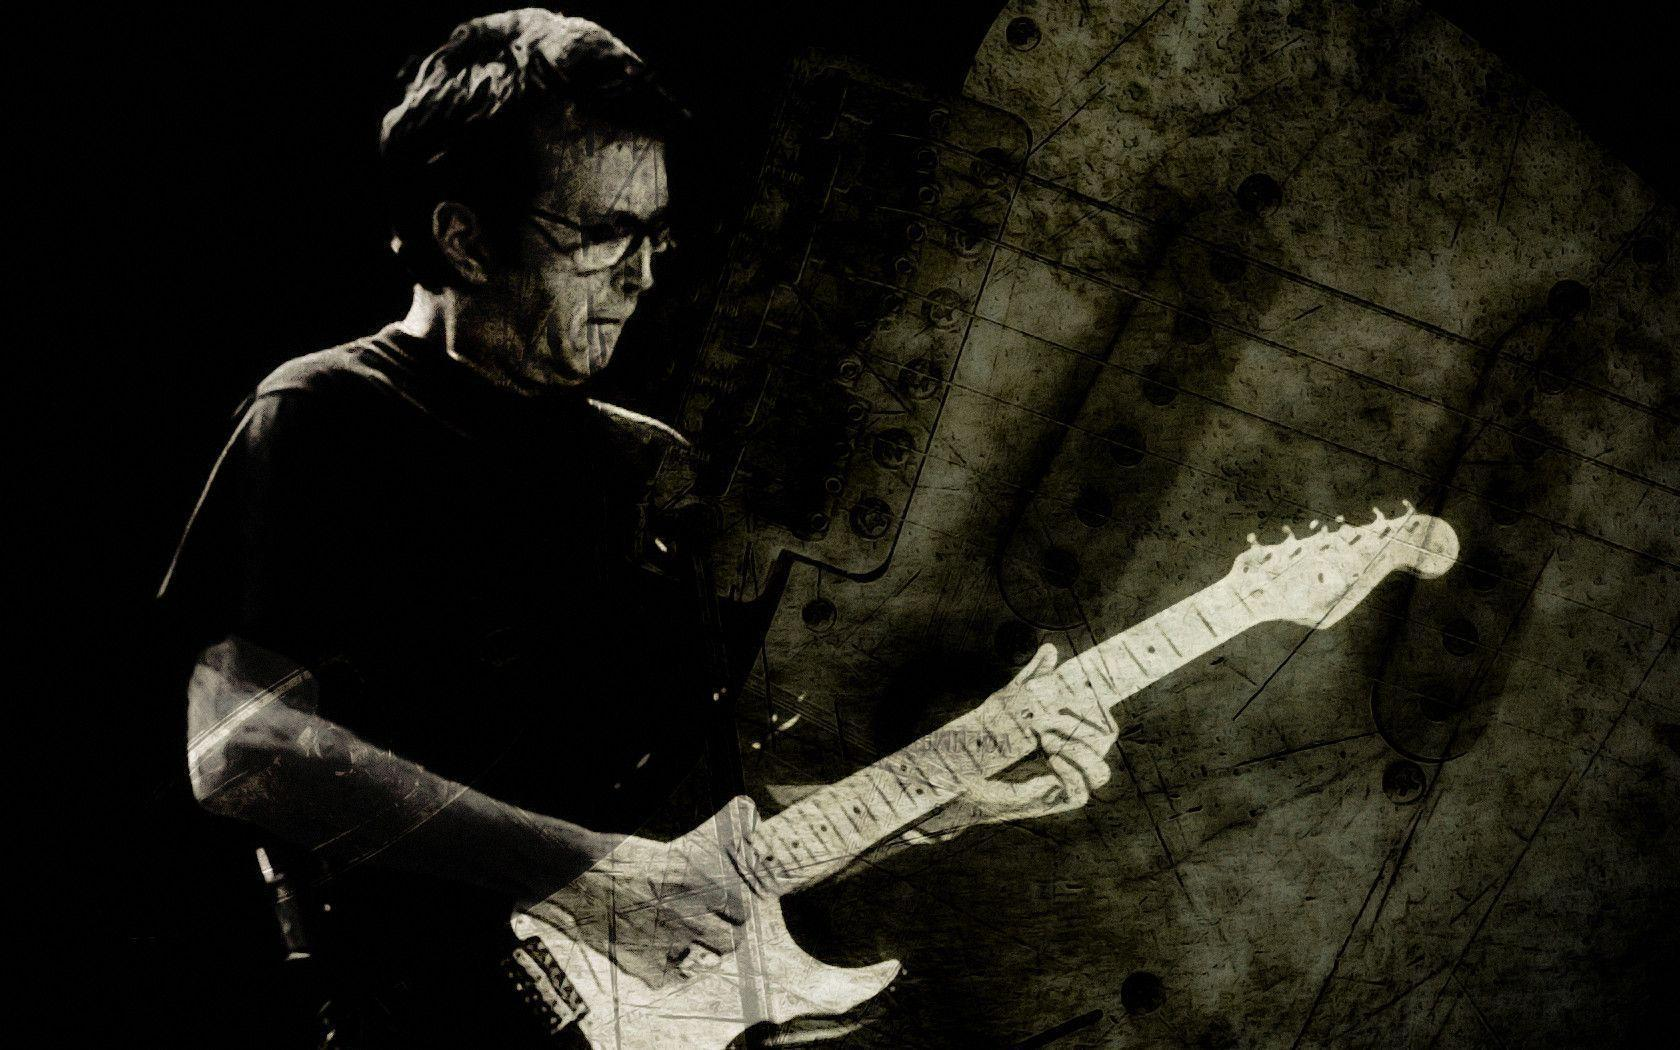 Eric Clapton Strat wallpapers by JohnnySlowhand